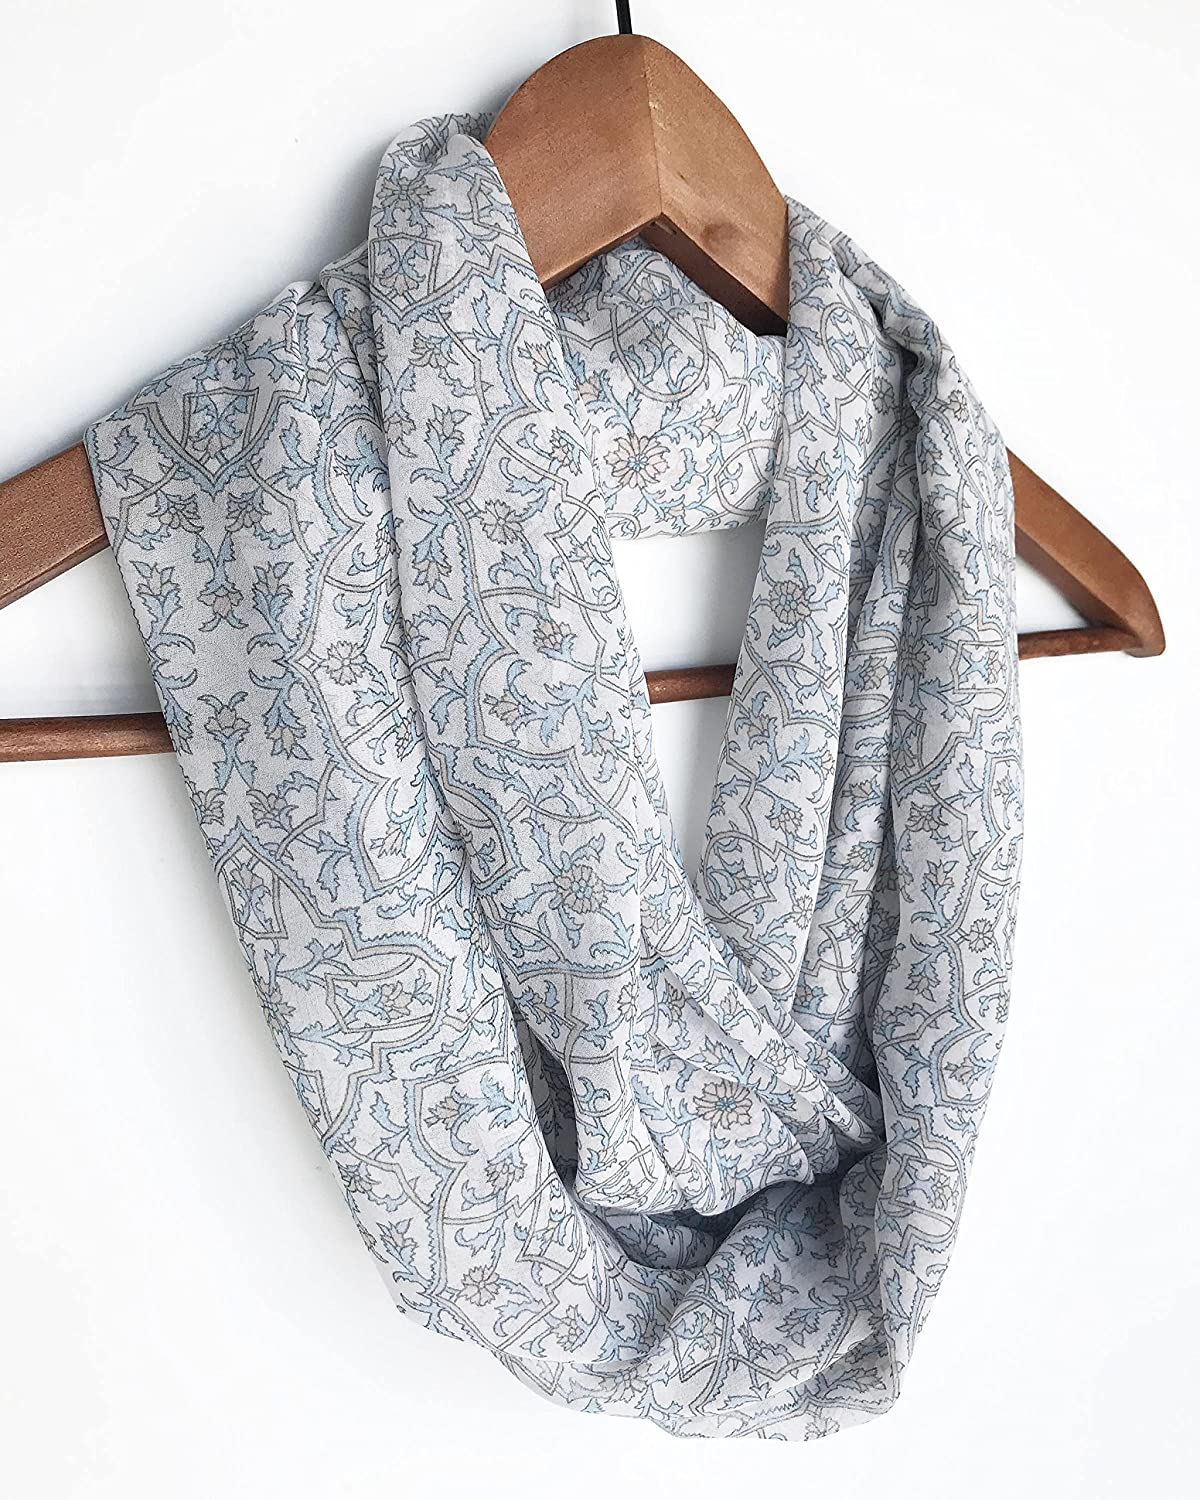 Pastel Blue Floral Scarf For Woman, Birthday Gift For Mom, Christmas Gift